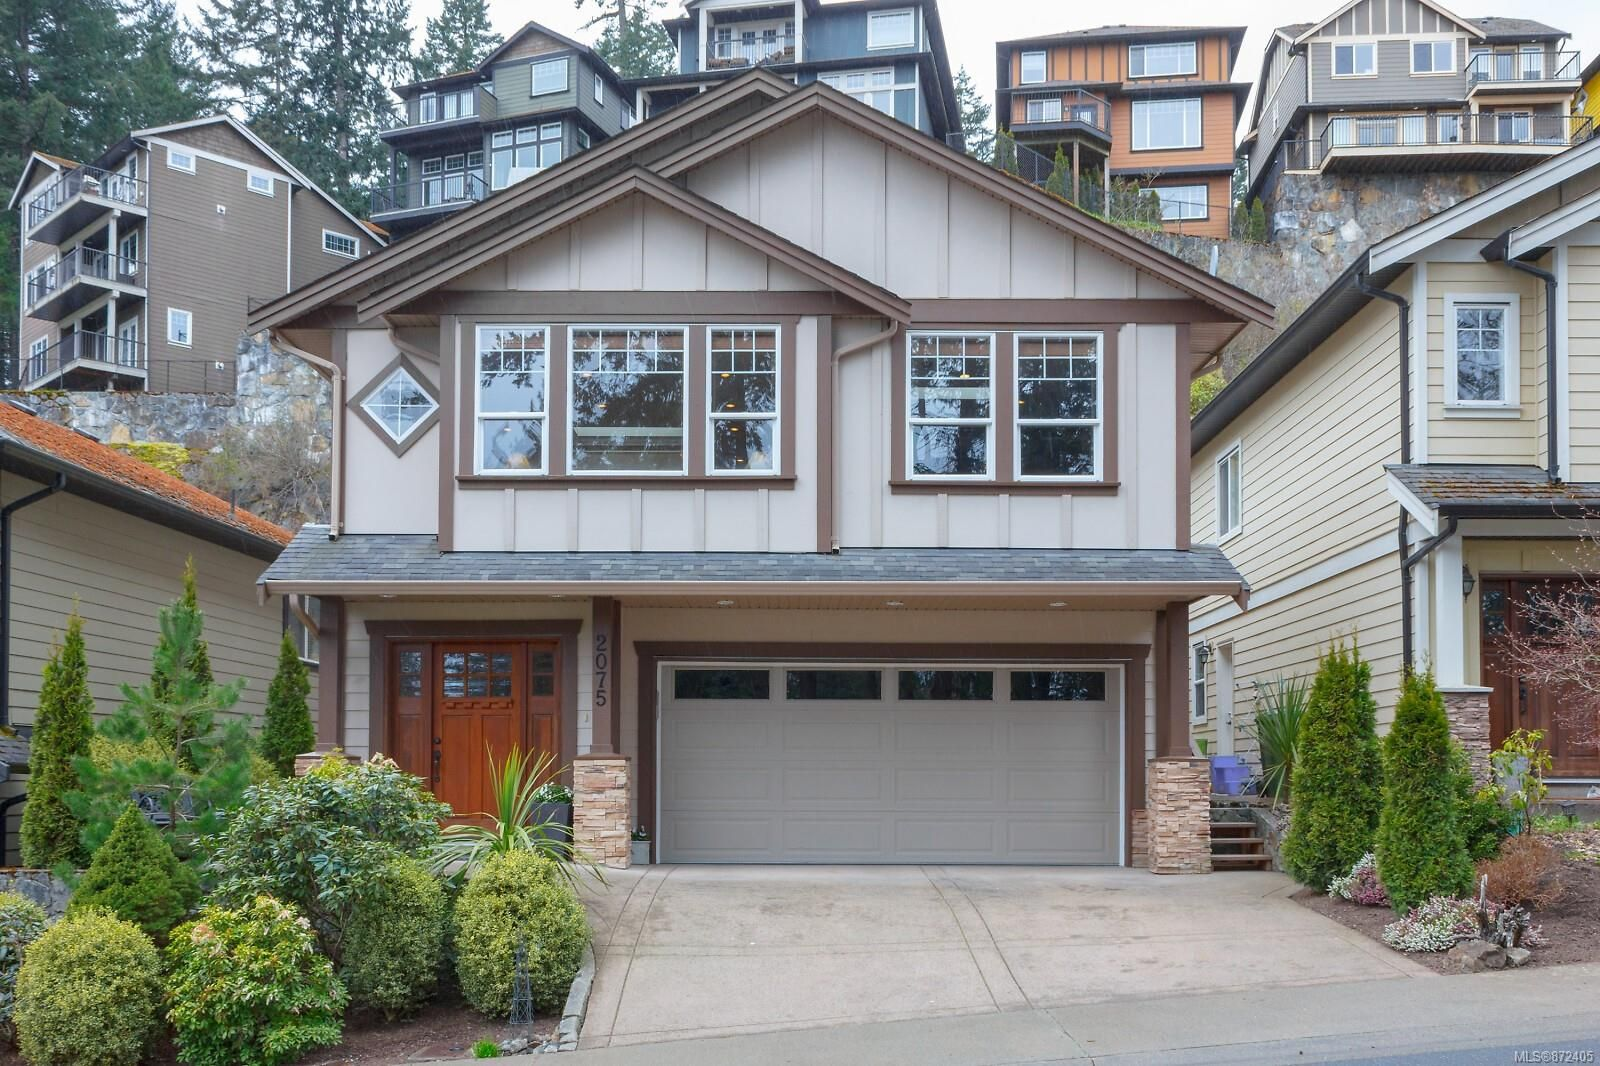 Main Photo: 2075 Longspur Dr in : La Bear Mountain House for sale (Langford)  : MLS®# 872405